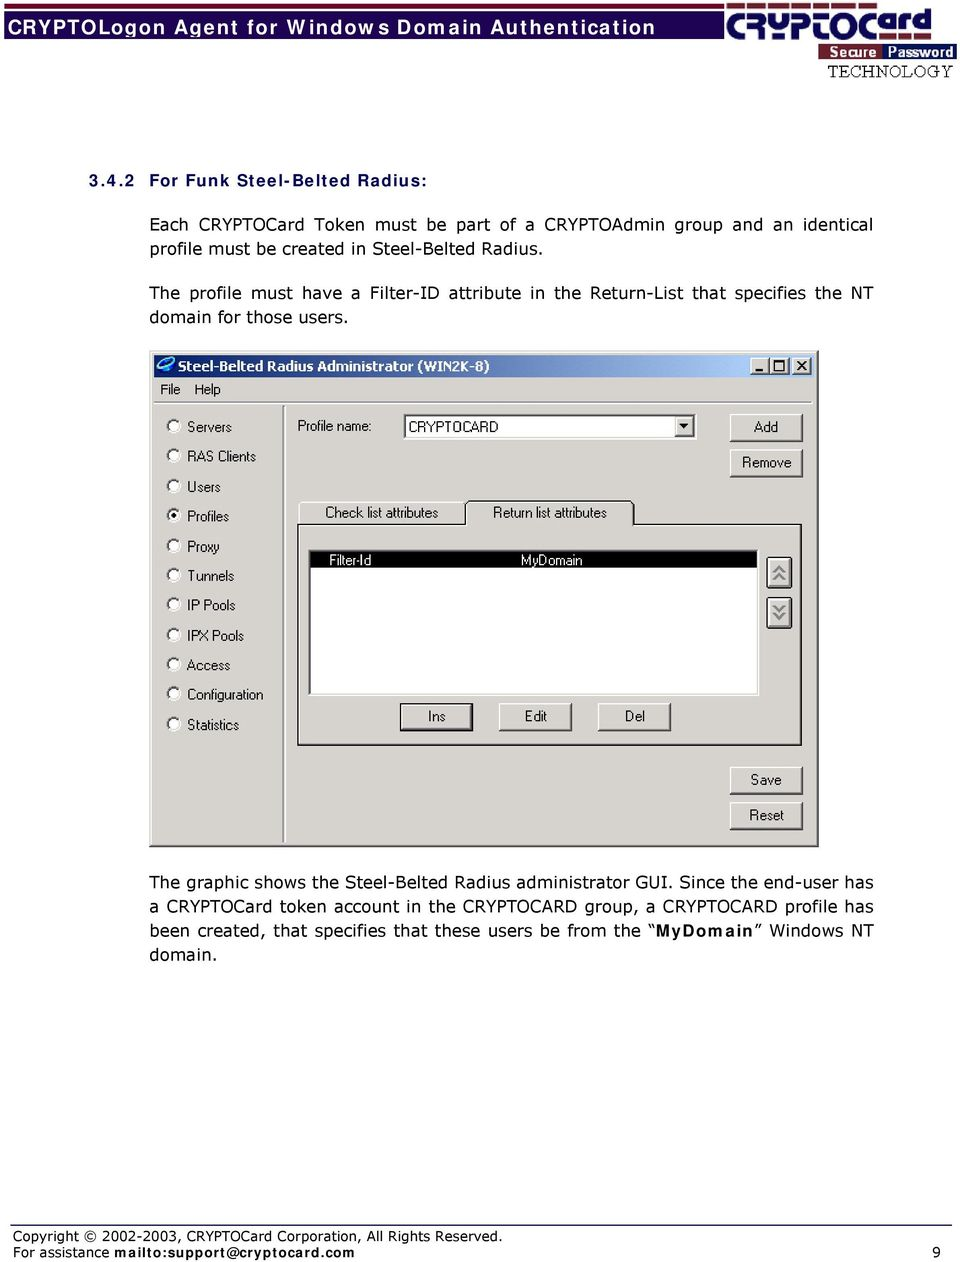 The graphic shows the Steel-Belted Radius administrator GUI.